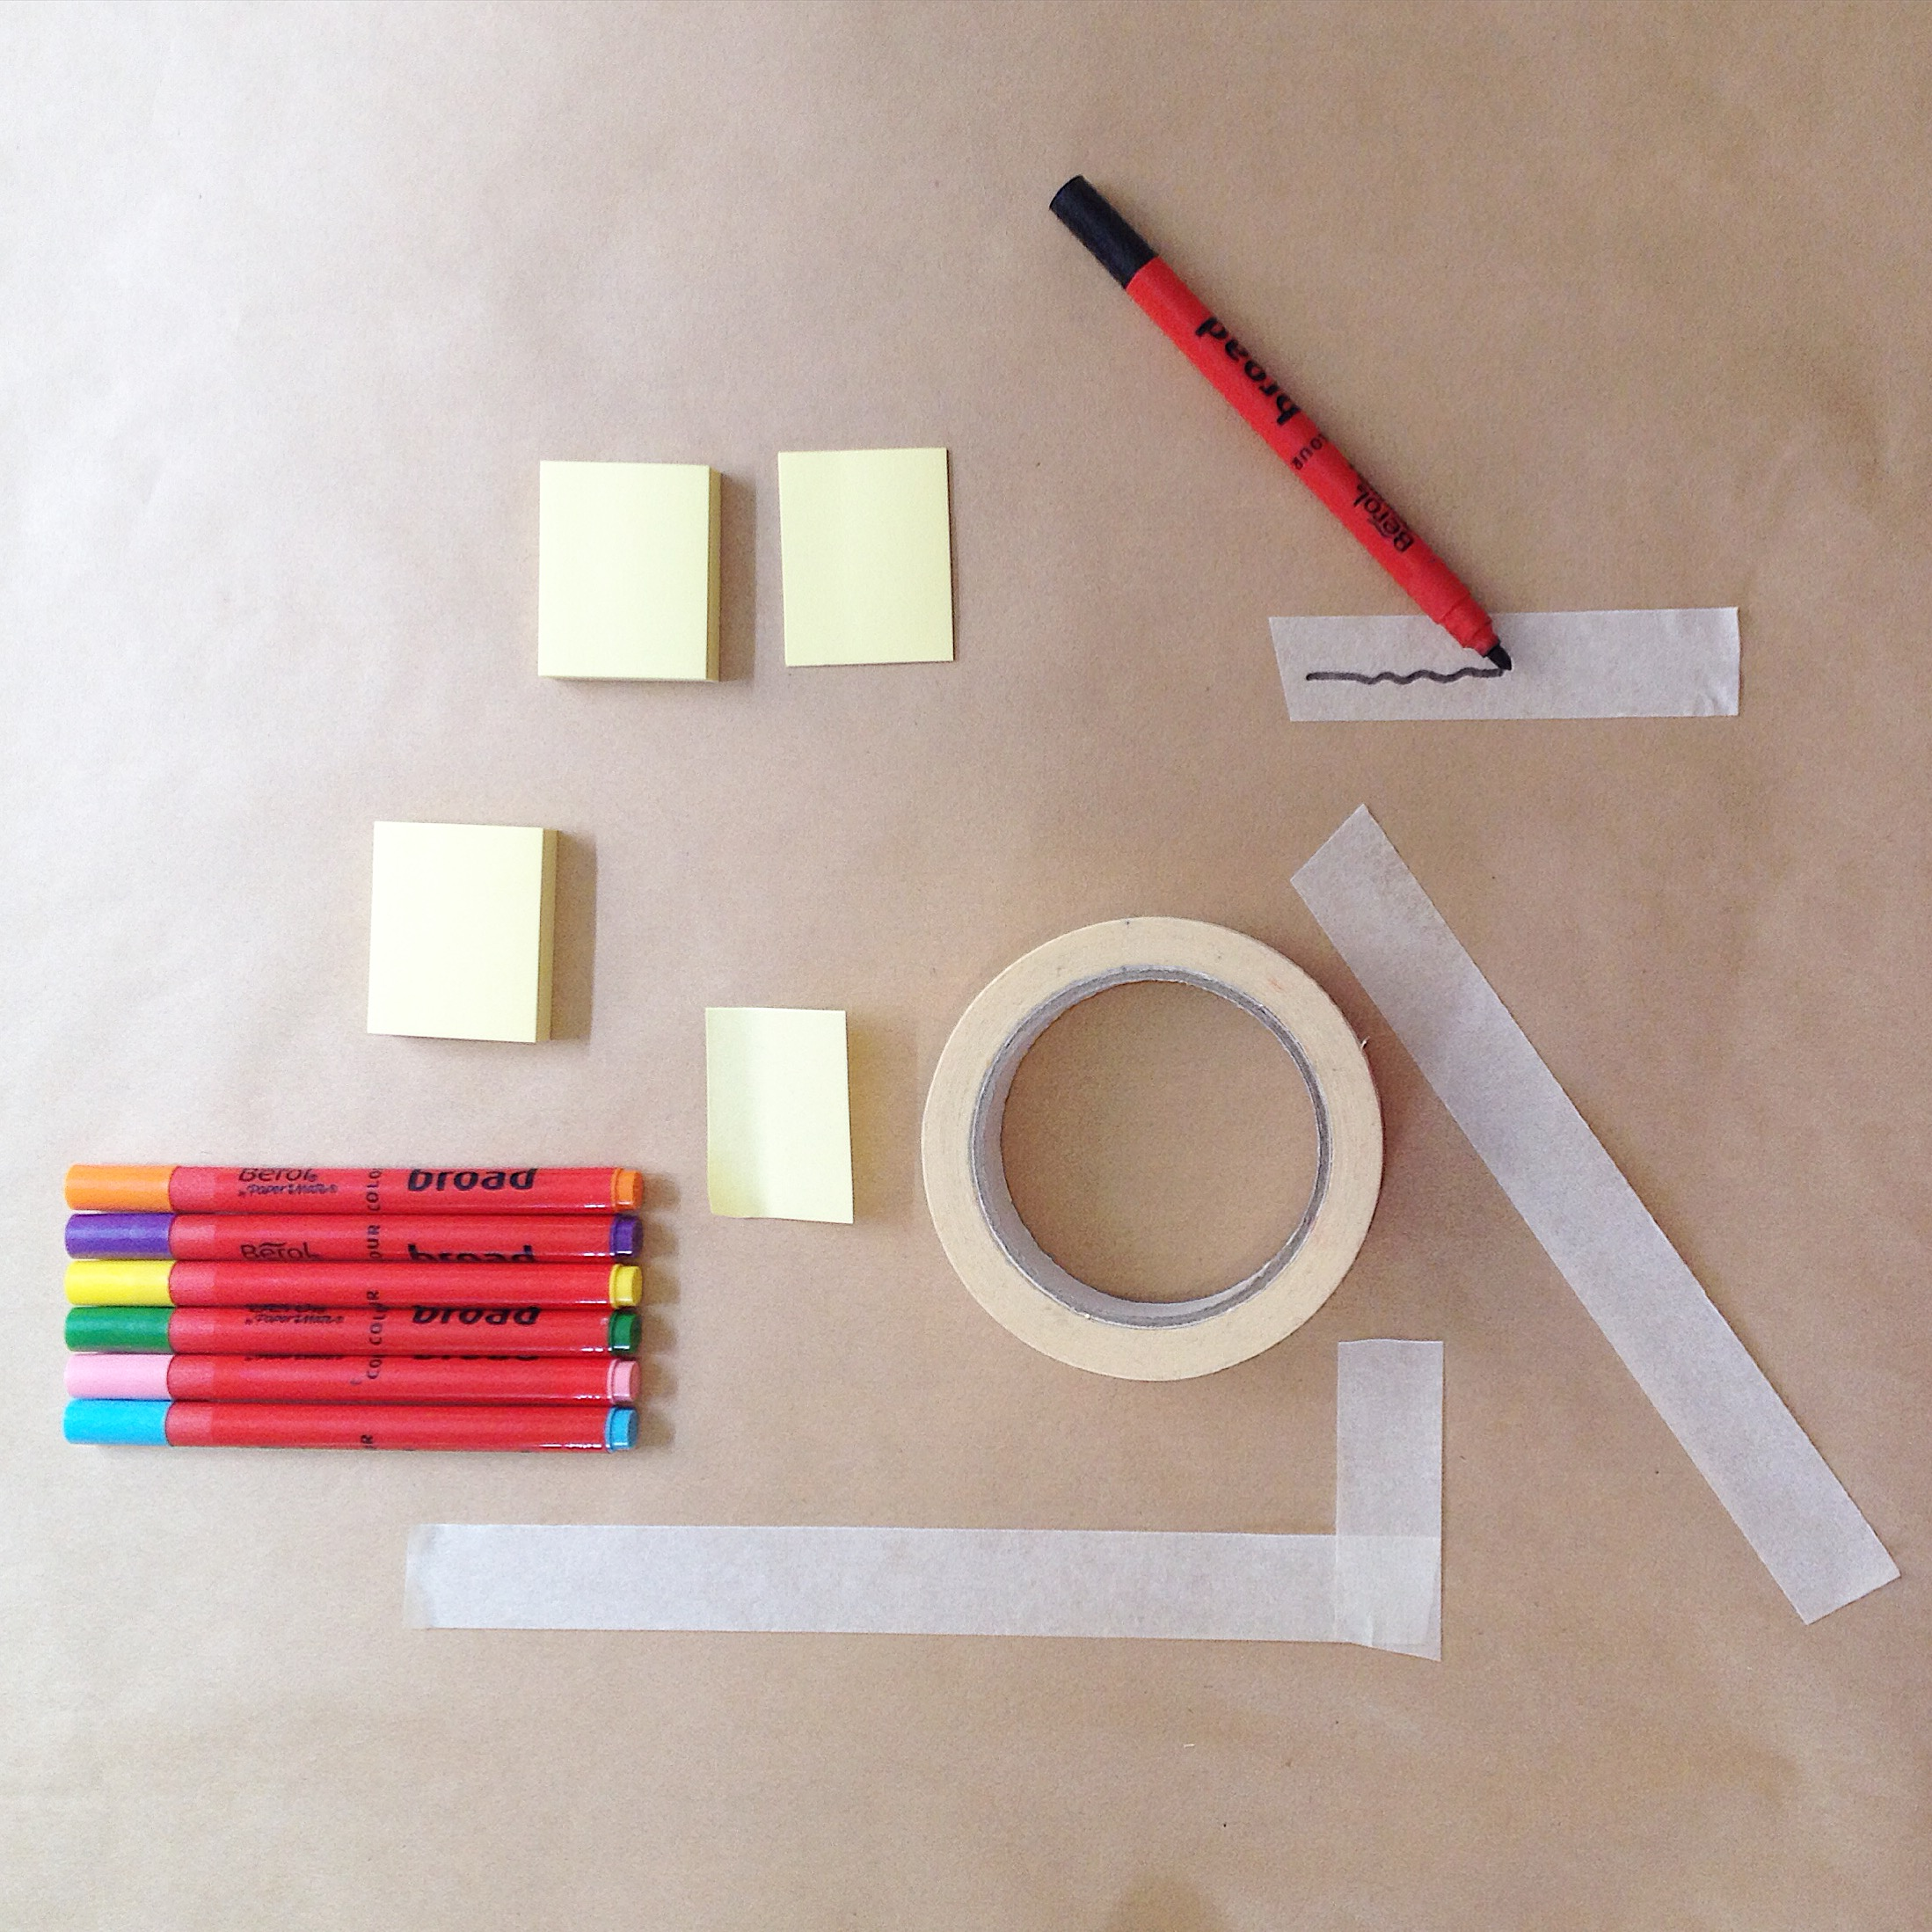 3. Post-it-notes, pens, masking tape